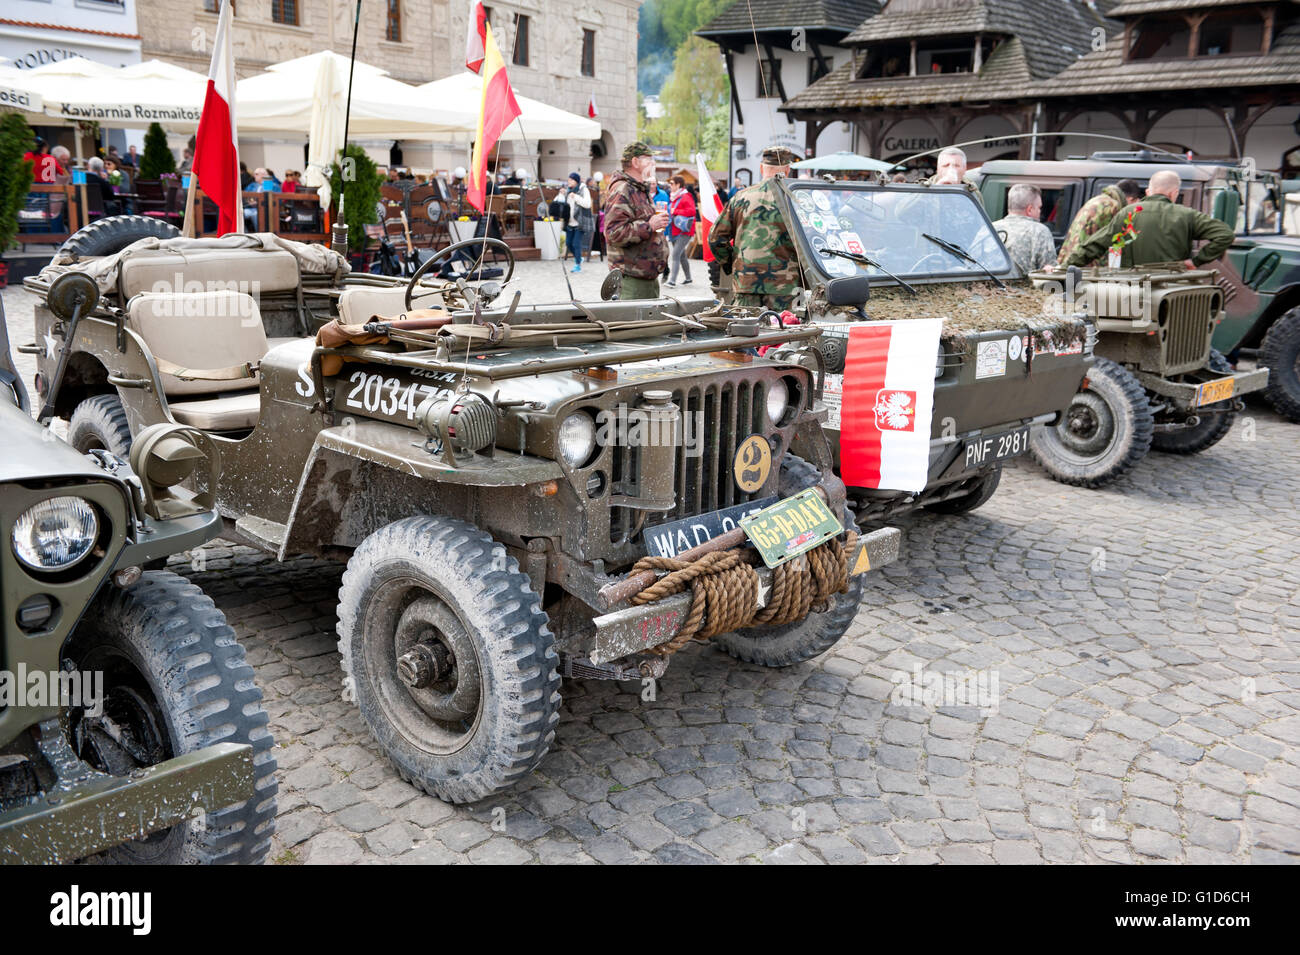 Willys trucks at Rally VI military vehicles from World War II in Kazimierz Dolny, antique army cars event at the - Stock Image